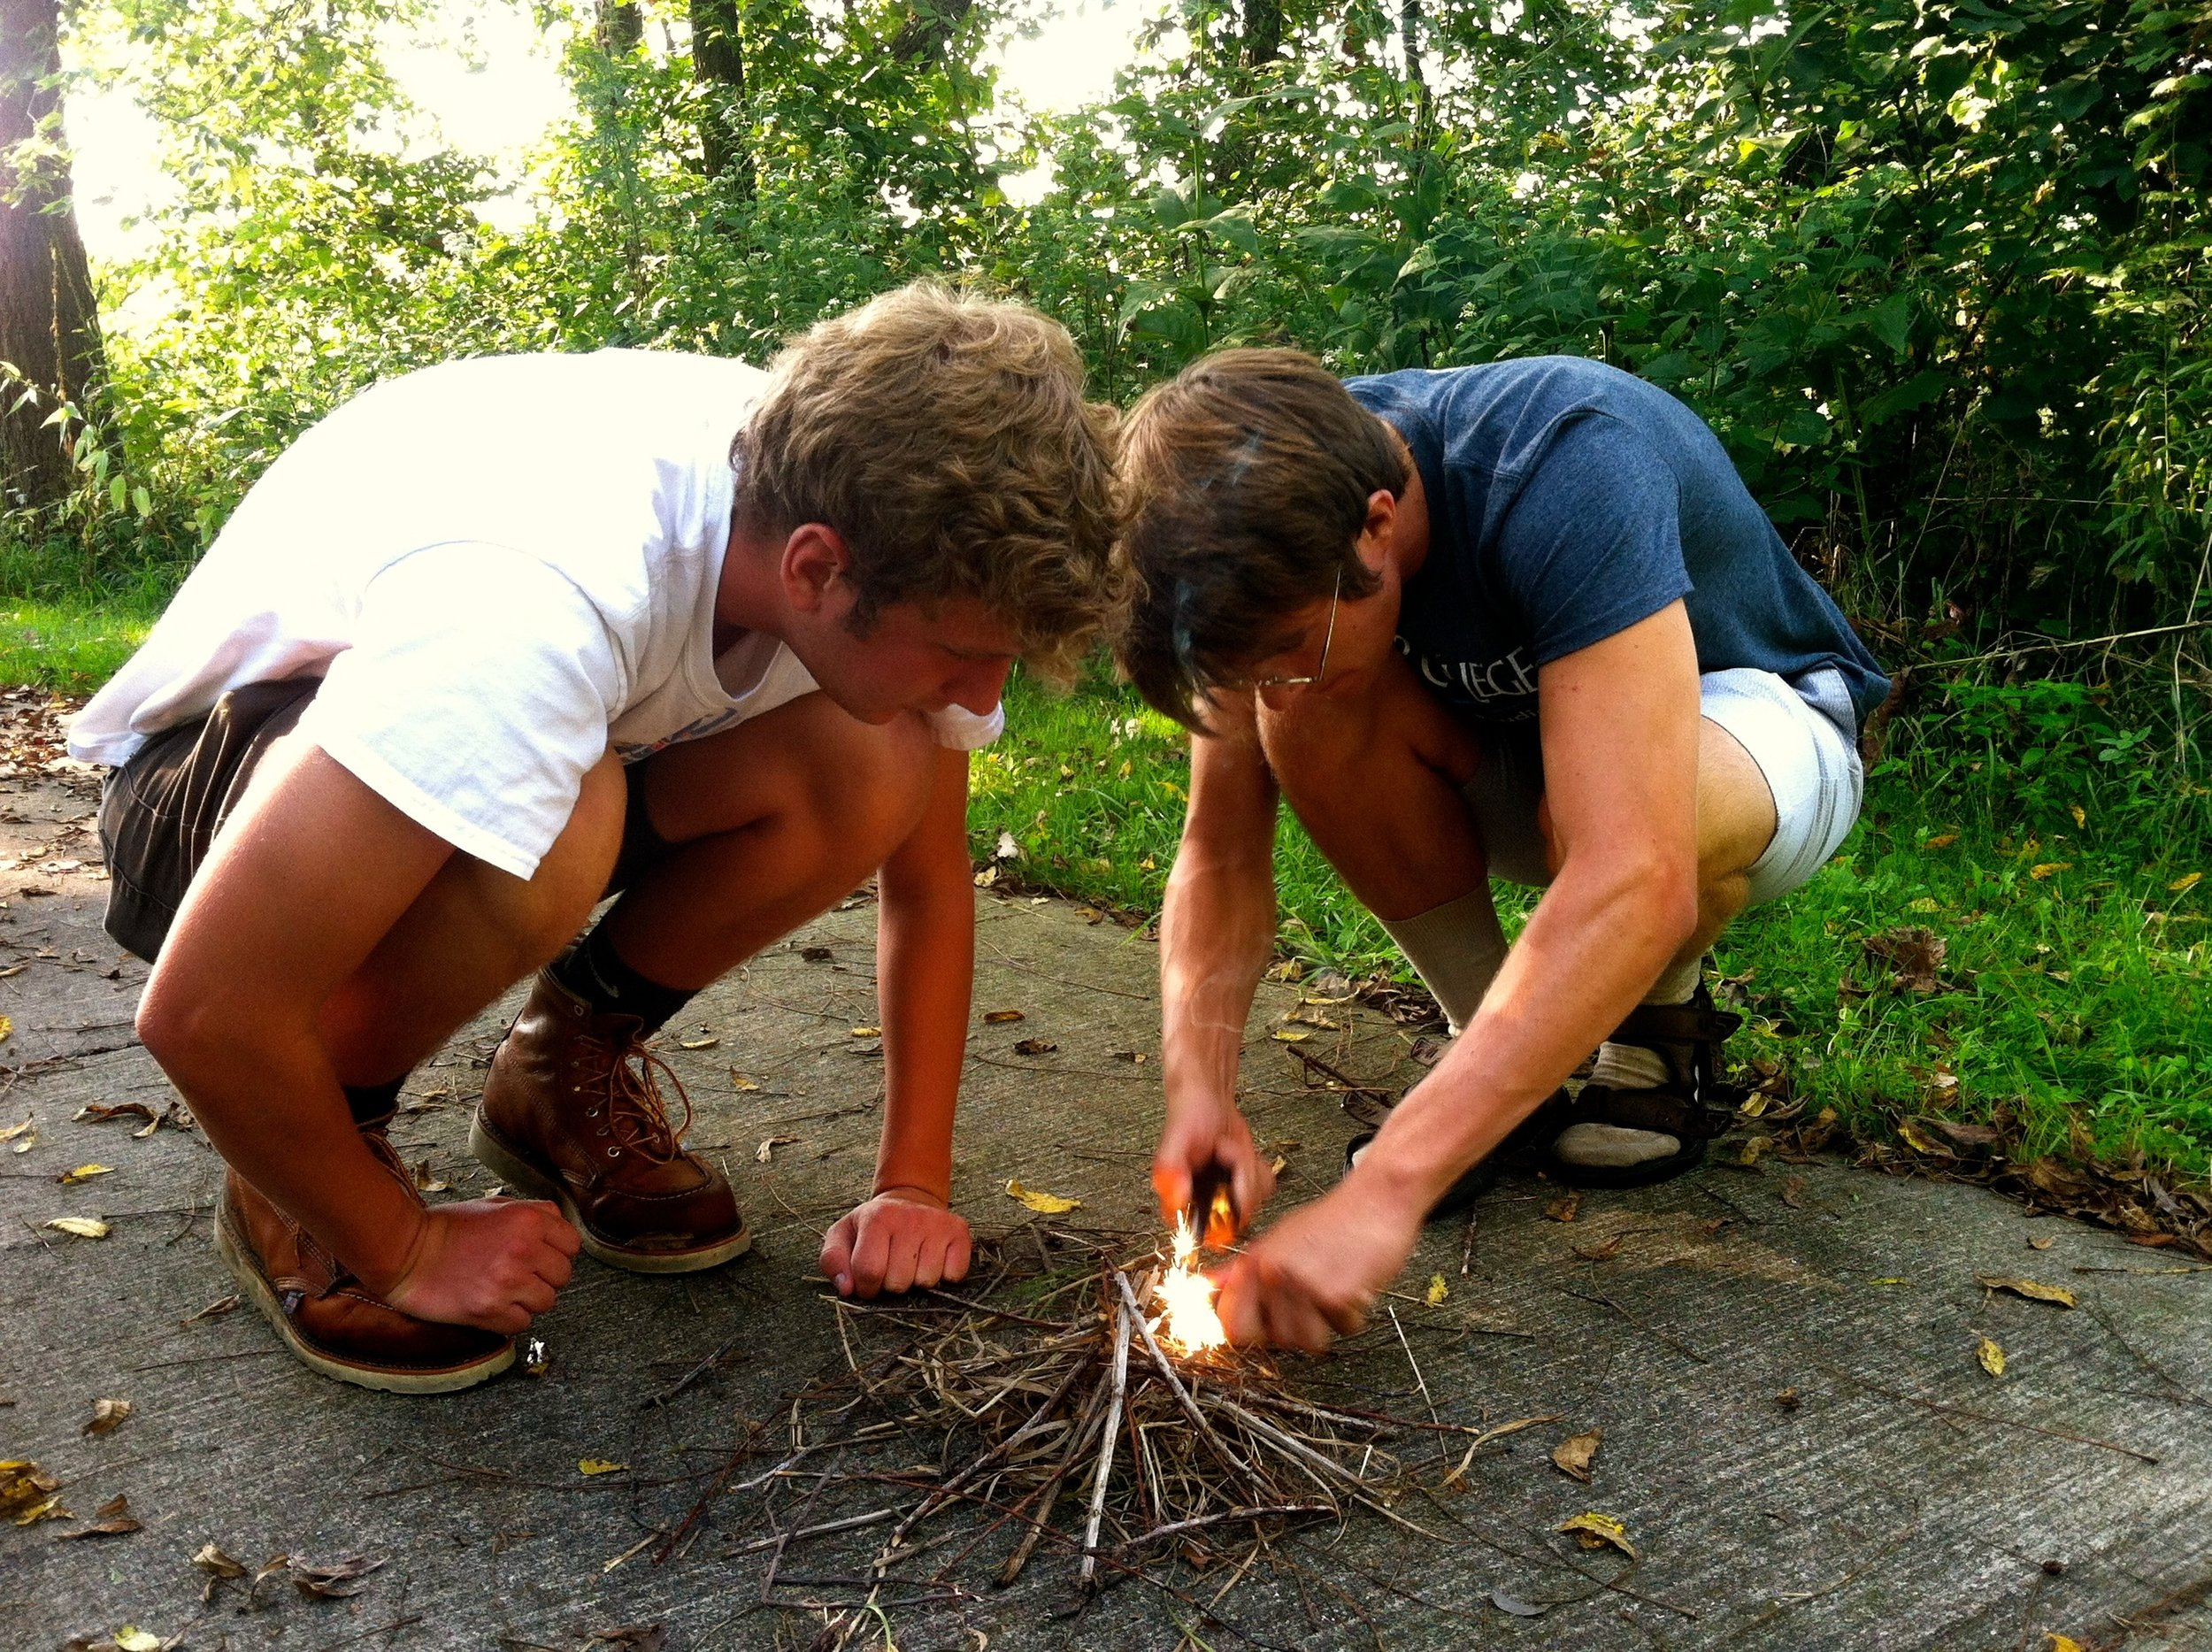 Bluestem students lighting a fire with flint